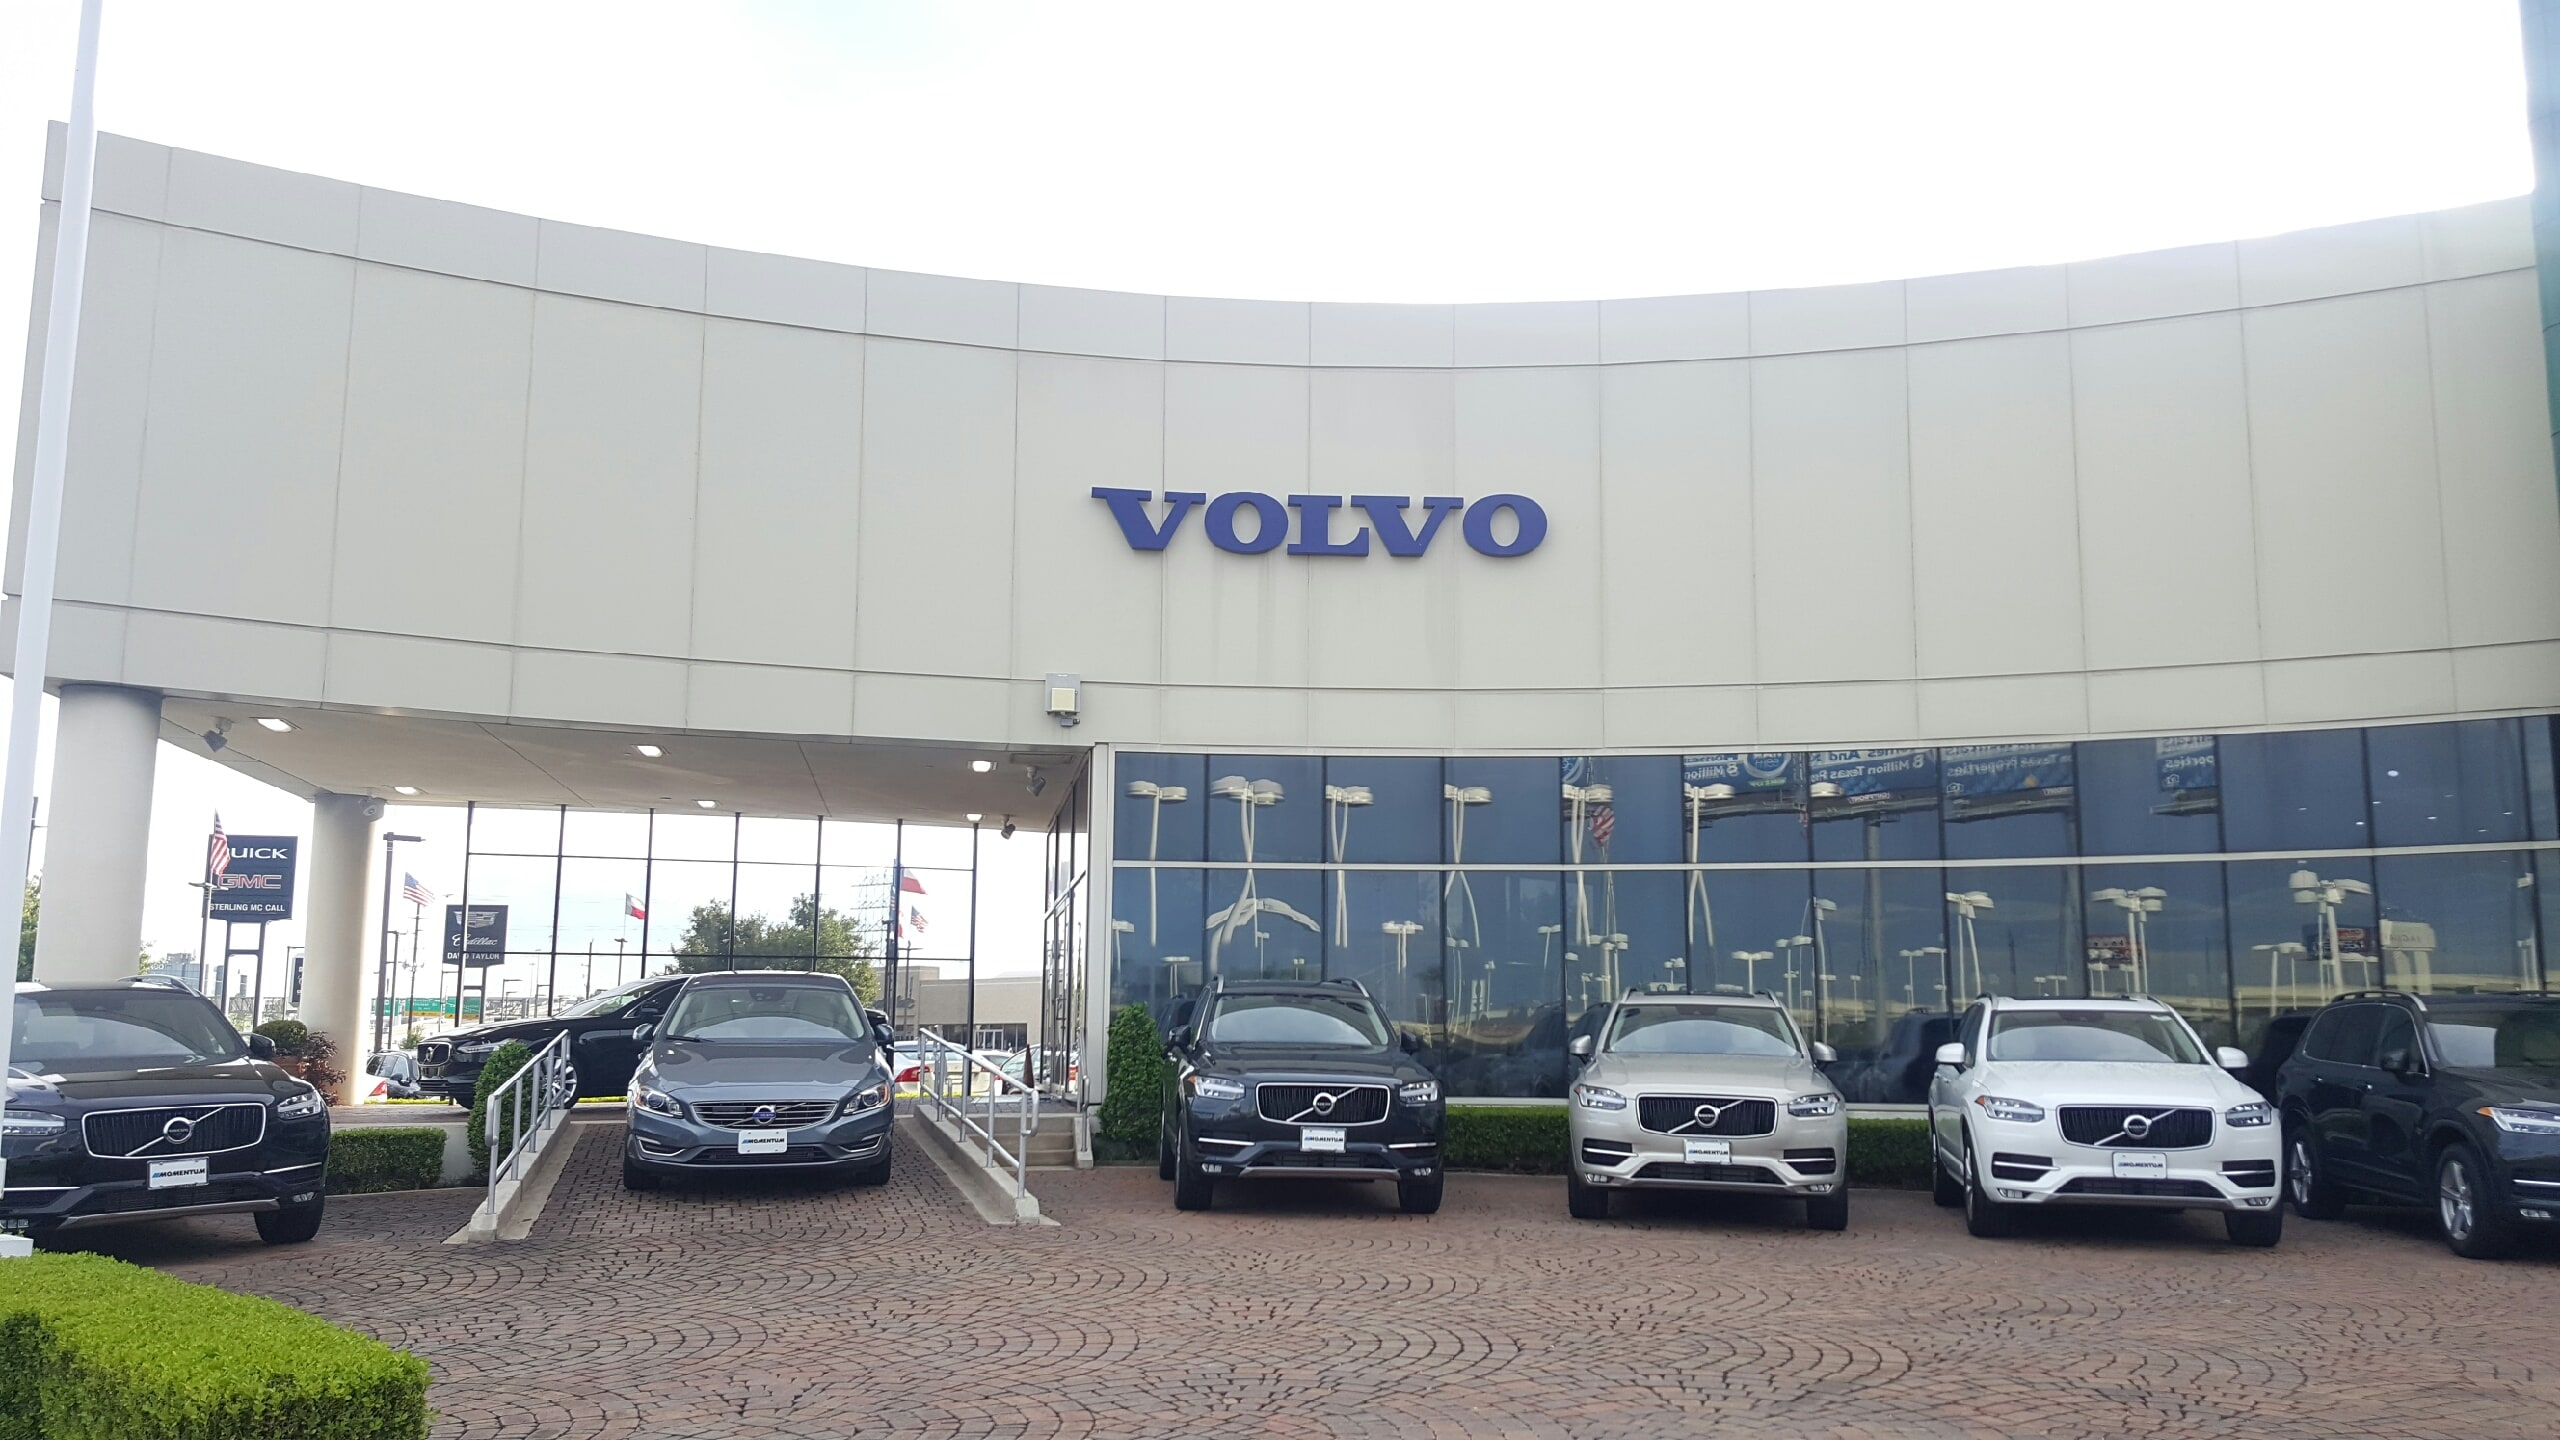 Used Car Dealerships In Houston Inspirational Learn More About Momentum Volvo New Used Cars